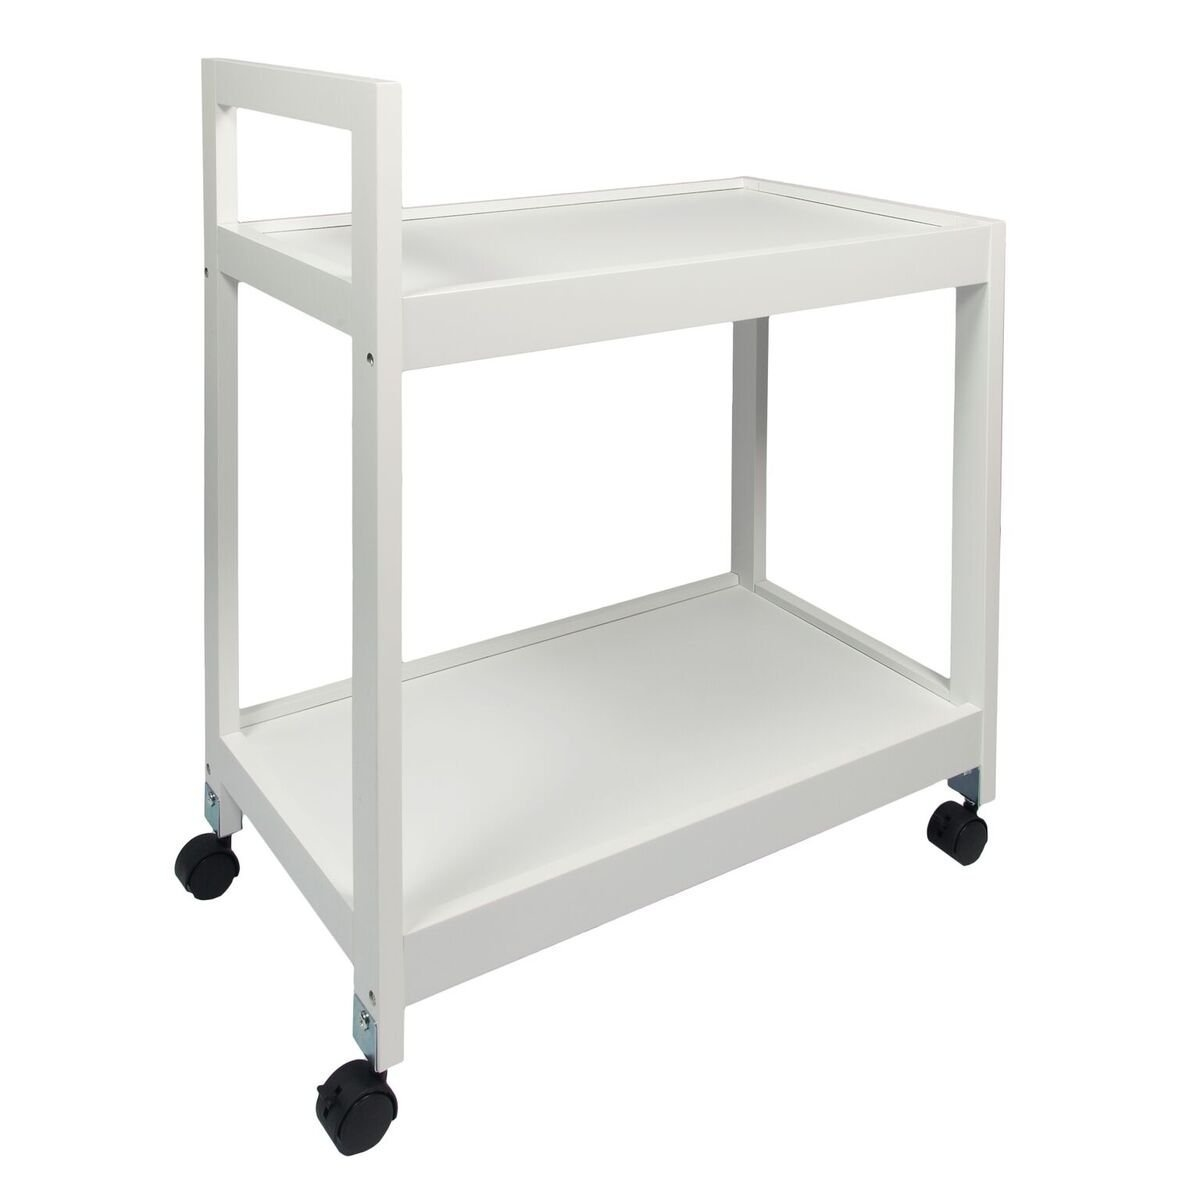 Woodluv Mdf 2 Tier Kitchen Storage Serving Trolley Island Cart With ...